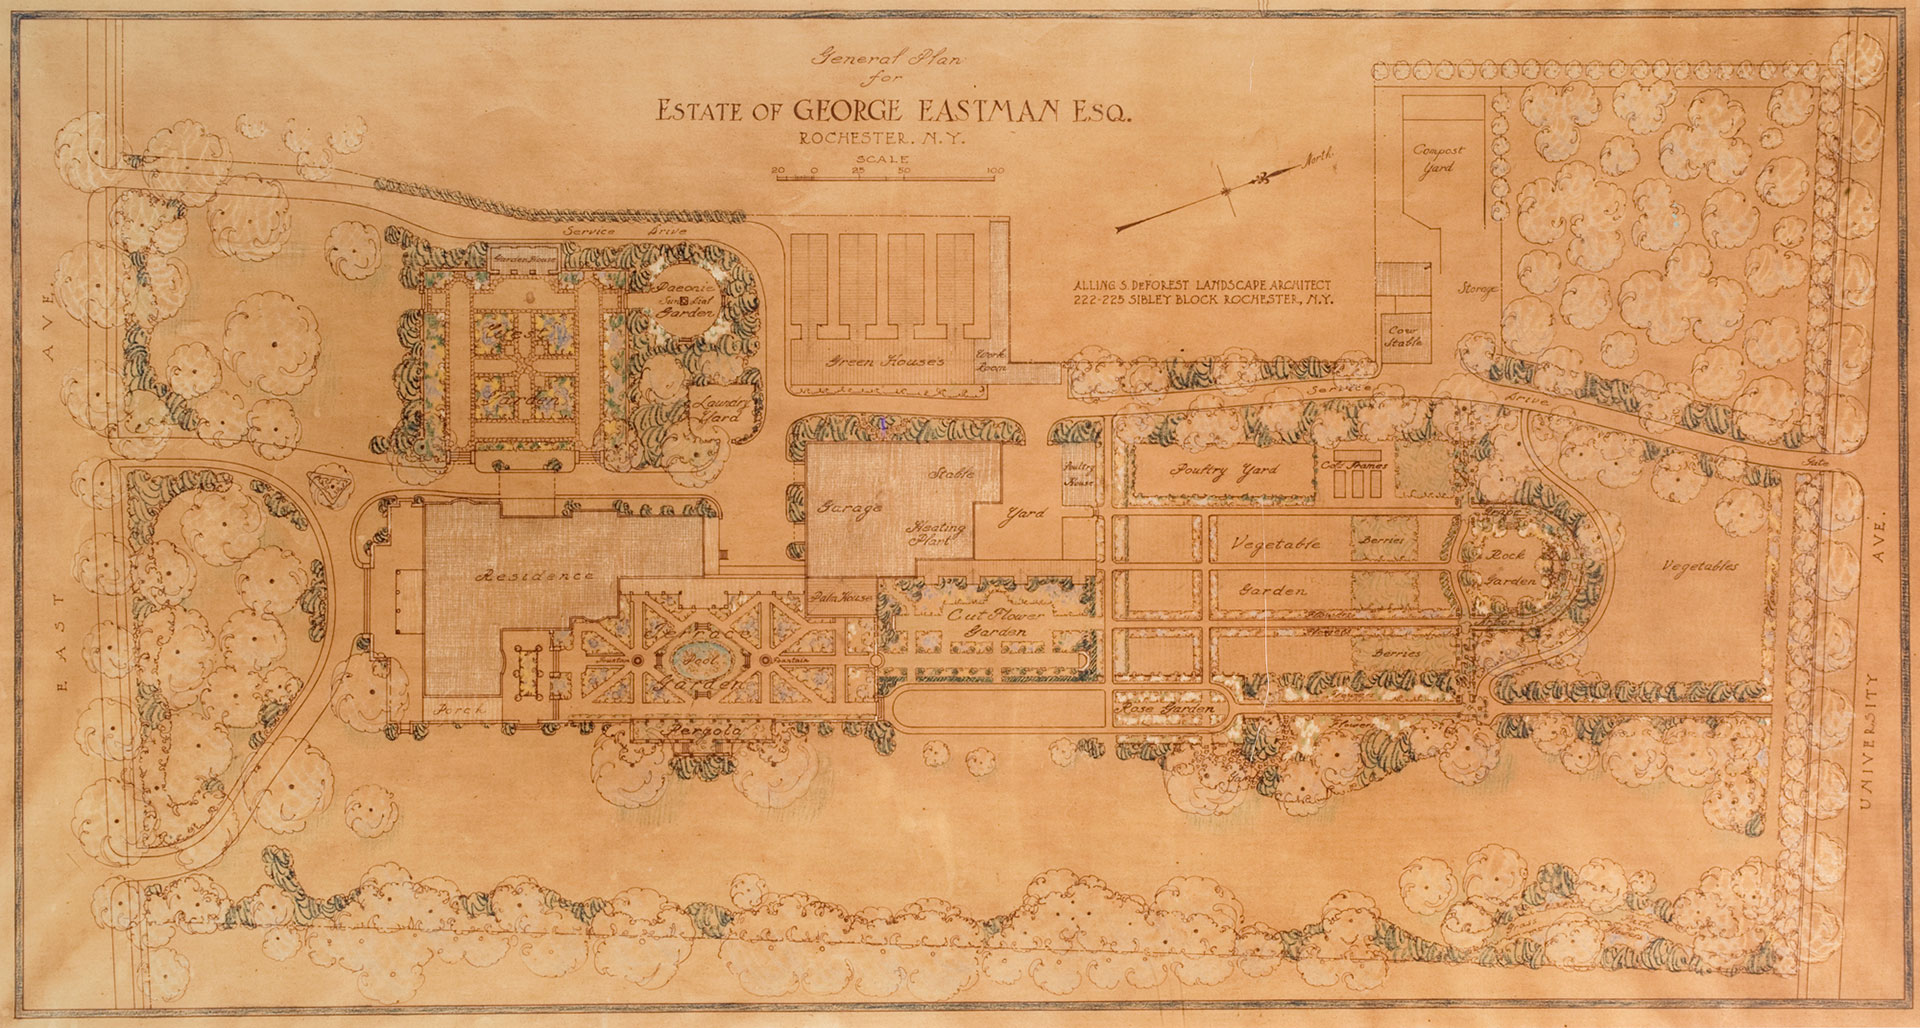 Collection Highlights Historic Landscape George Eastman